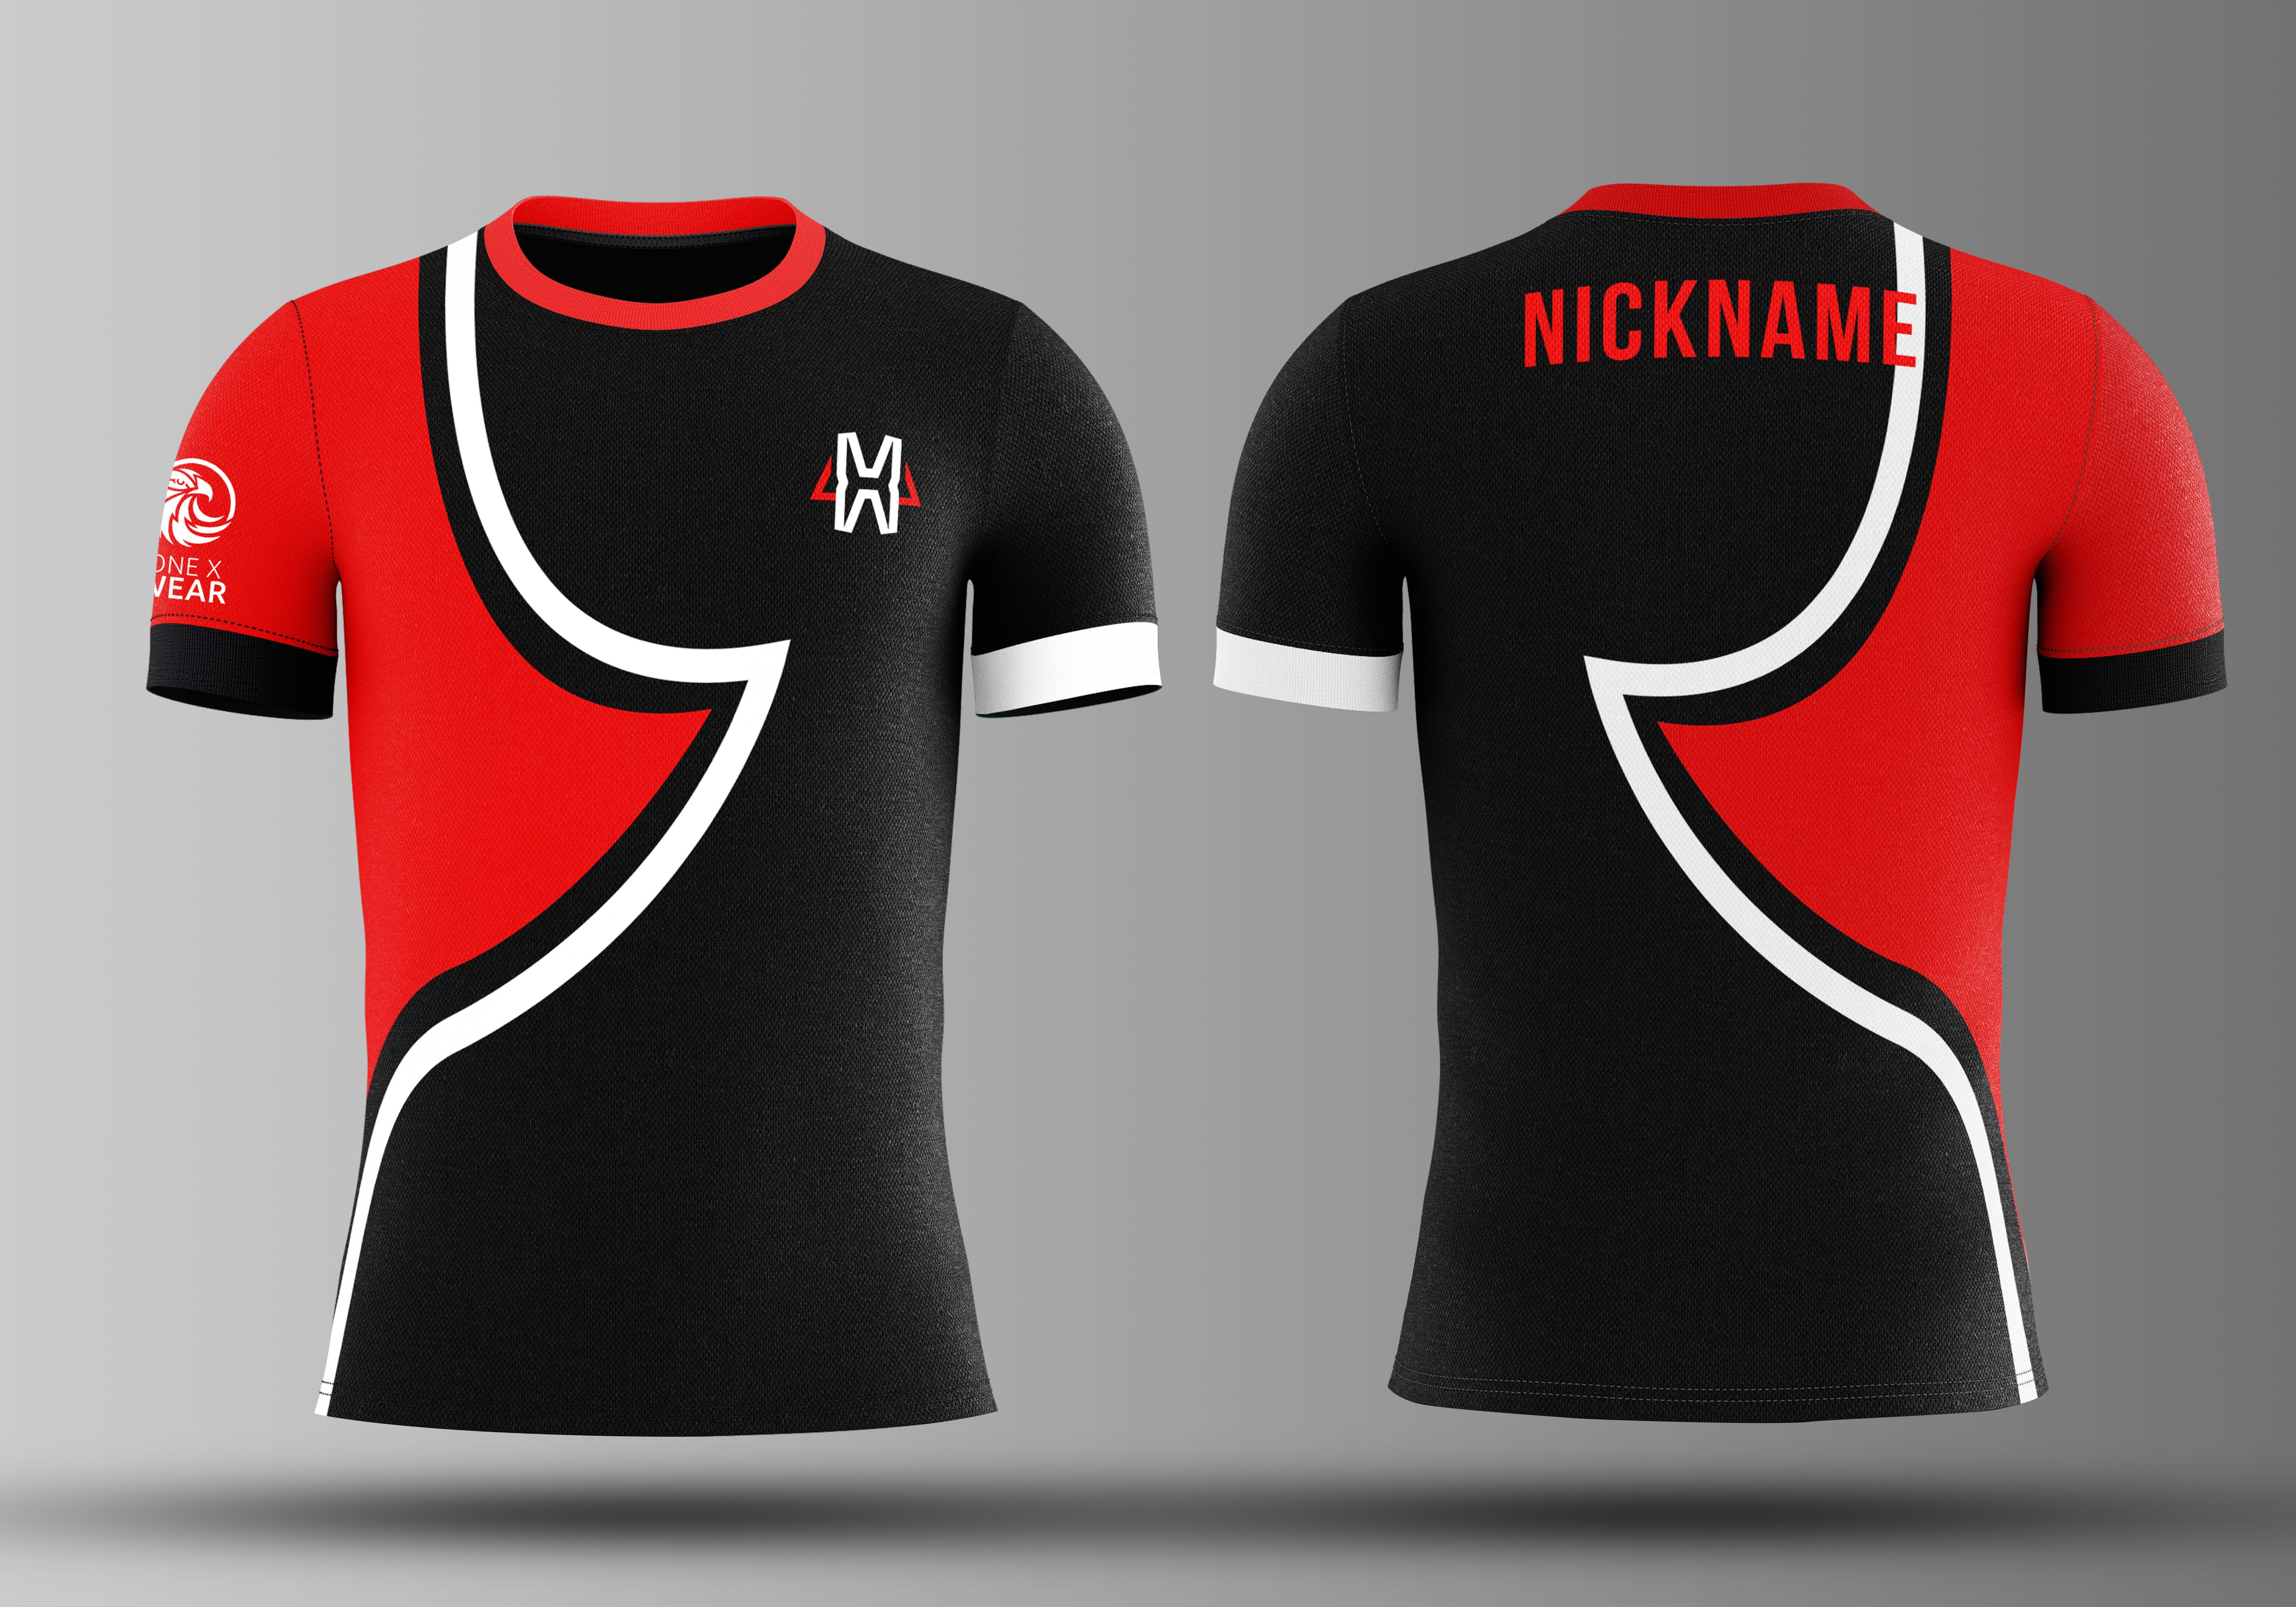 Download I Will Design Jersey For Esports Soccer Etc In 24 Hours Sport T Shirt Clothes Design Sleeves Clothing